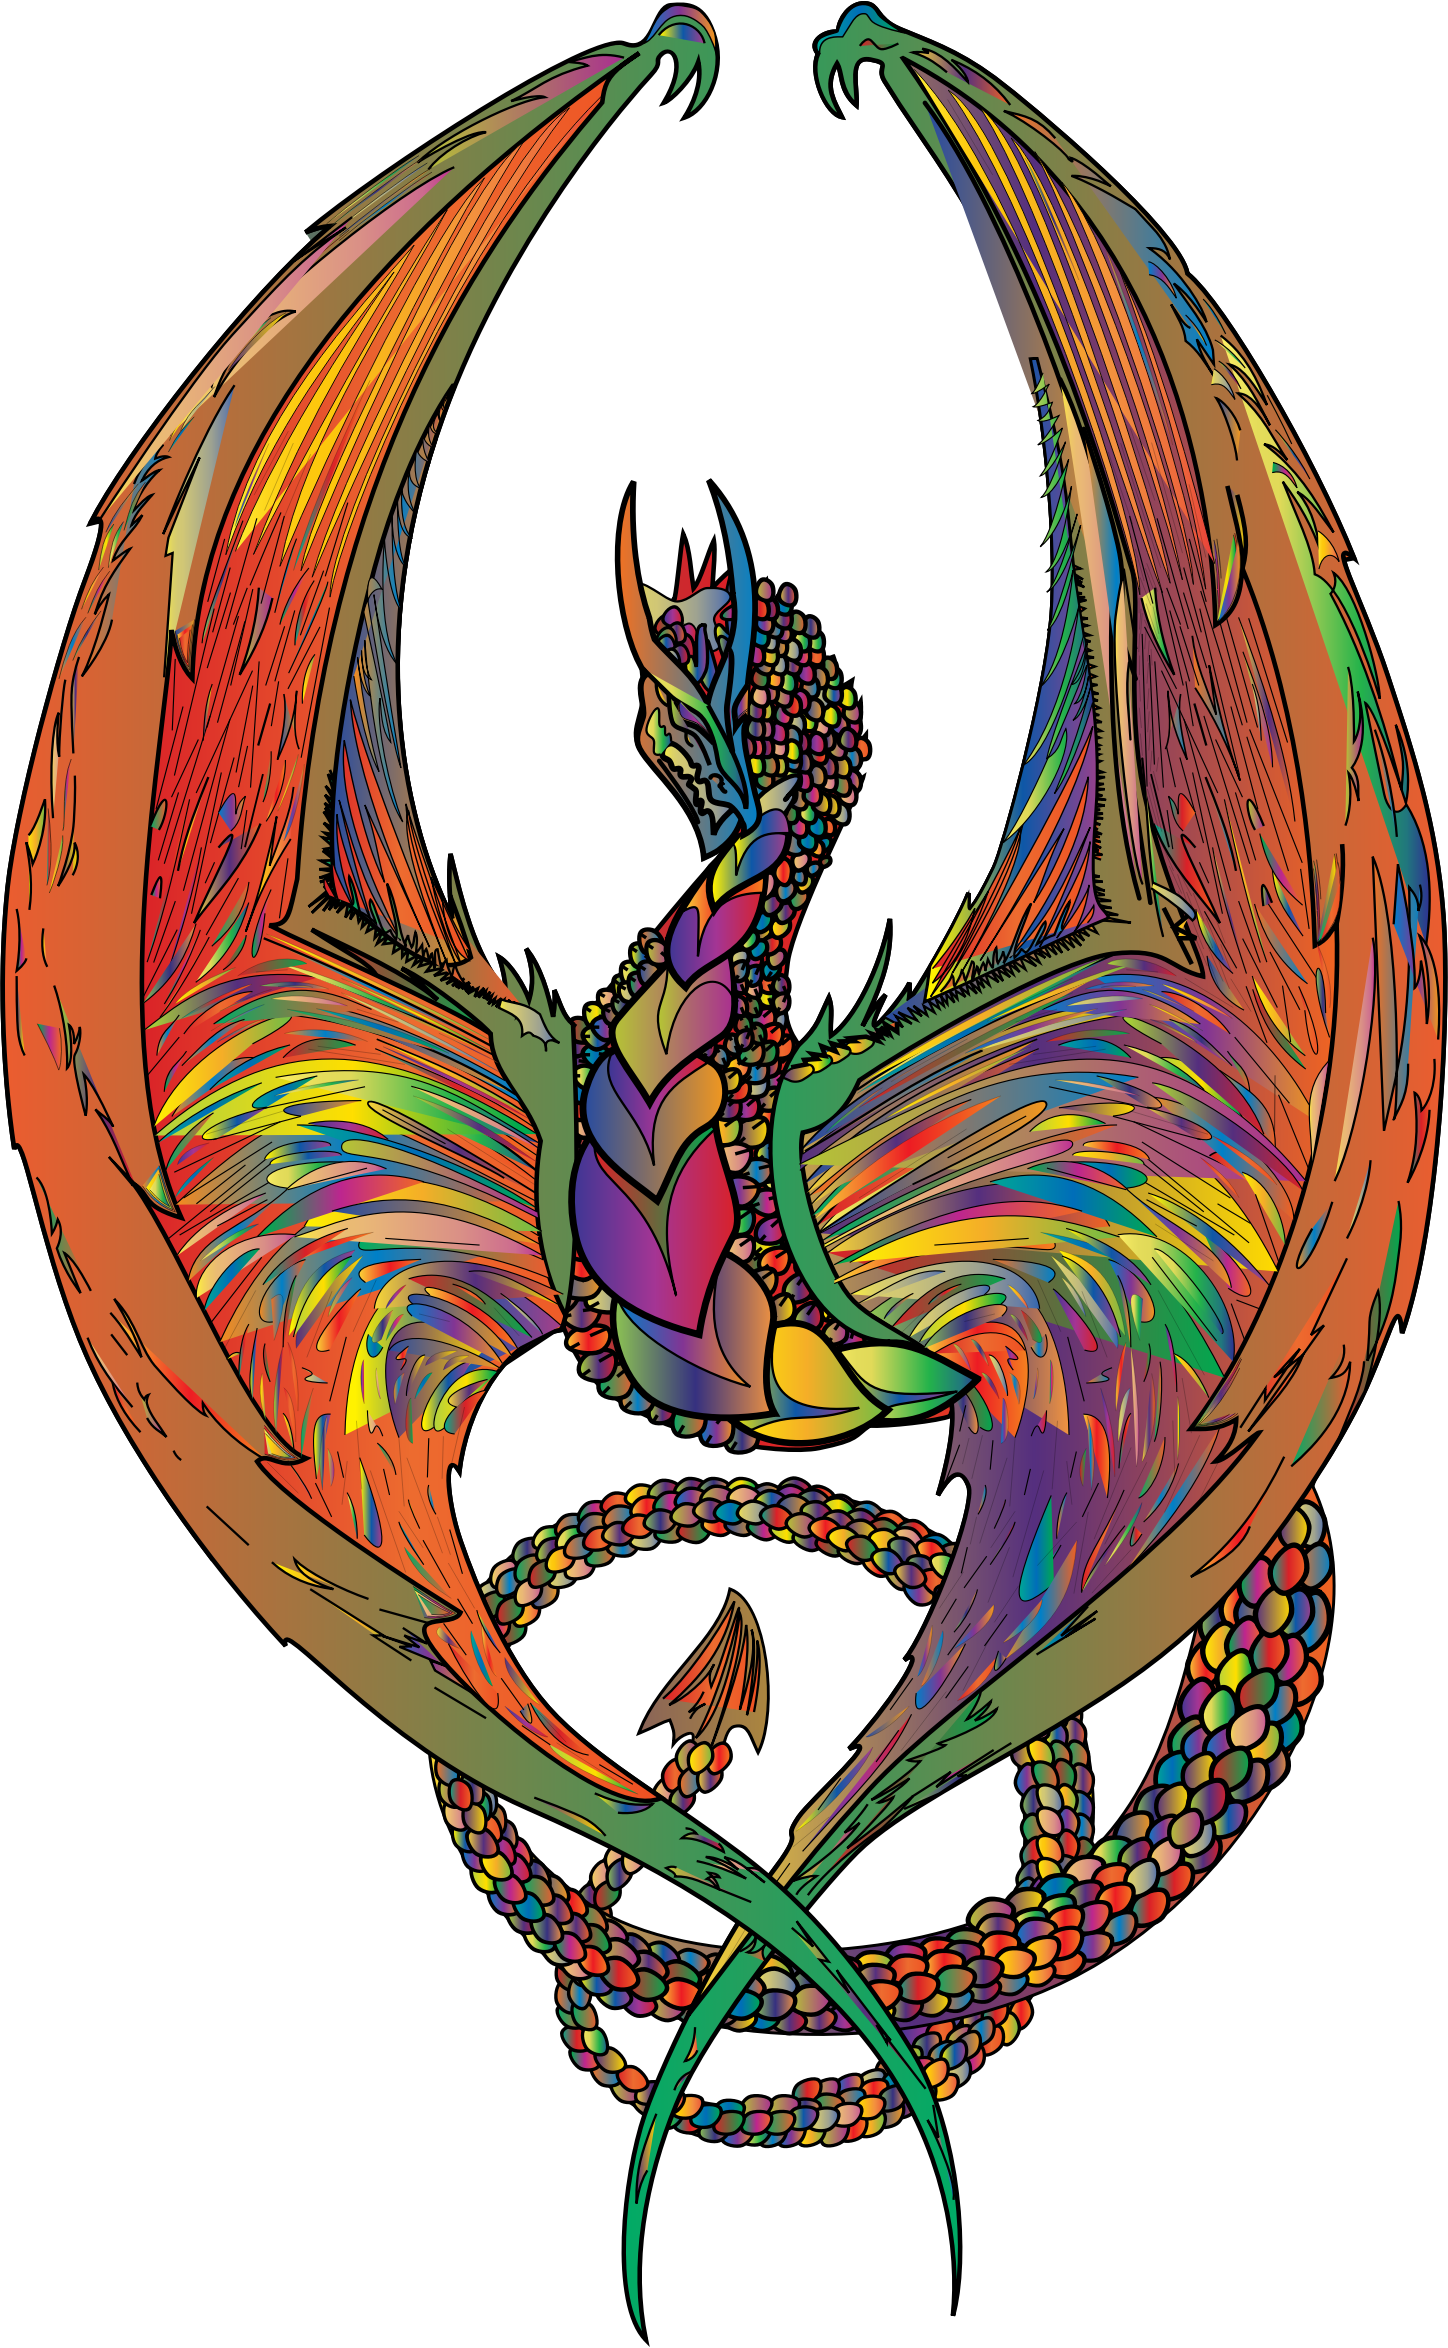 Prismatic Wyvern by GDJ